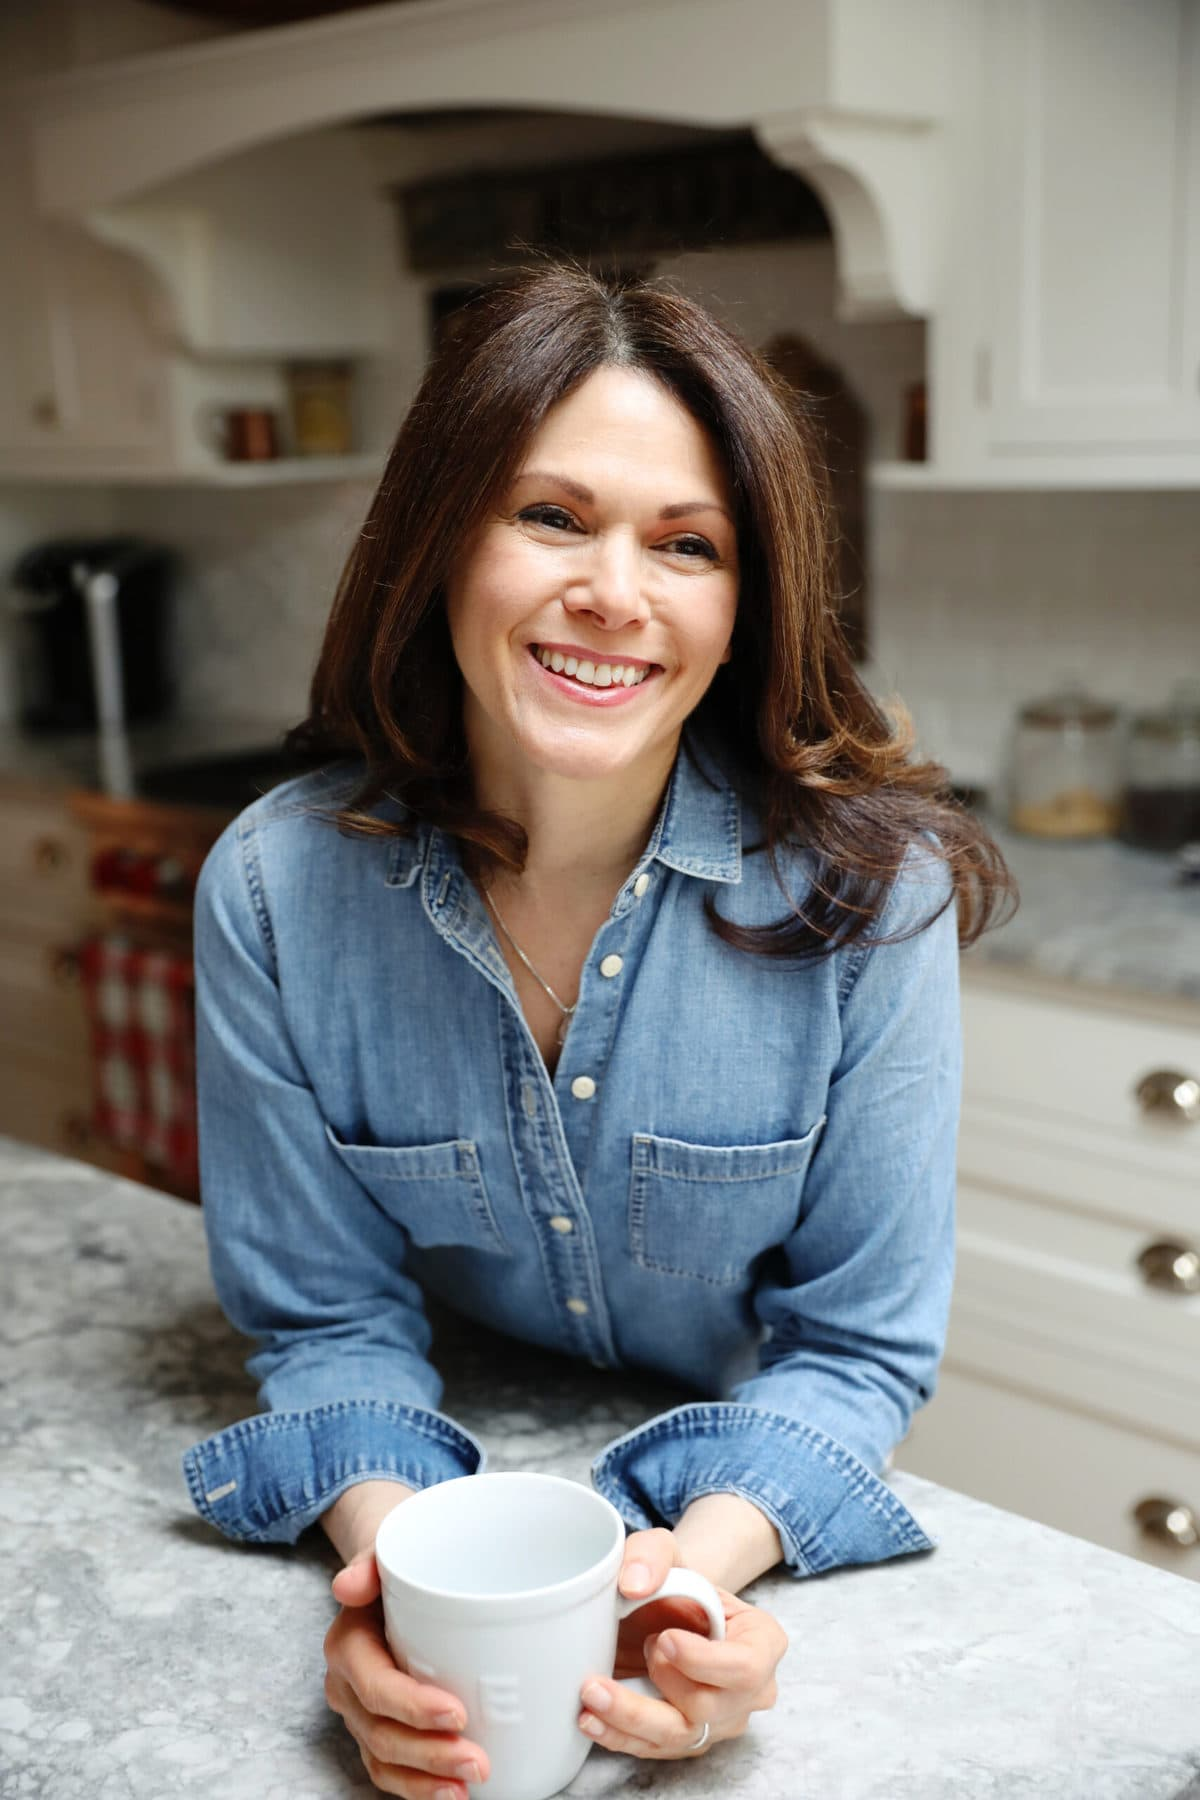 Food blogger, food stylist and recipe developer Karen Tedesco from Familystyle Food